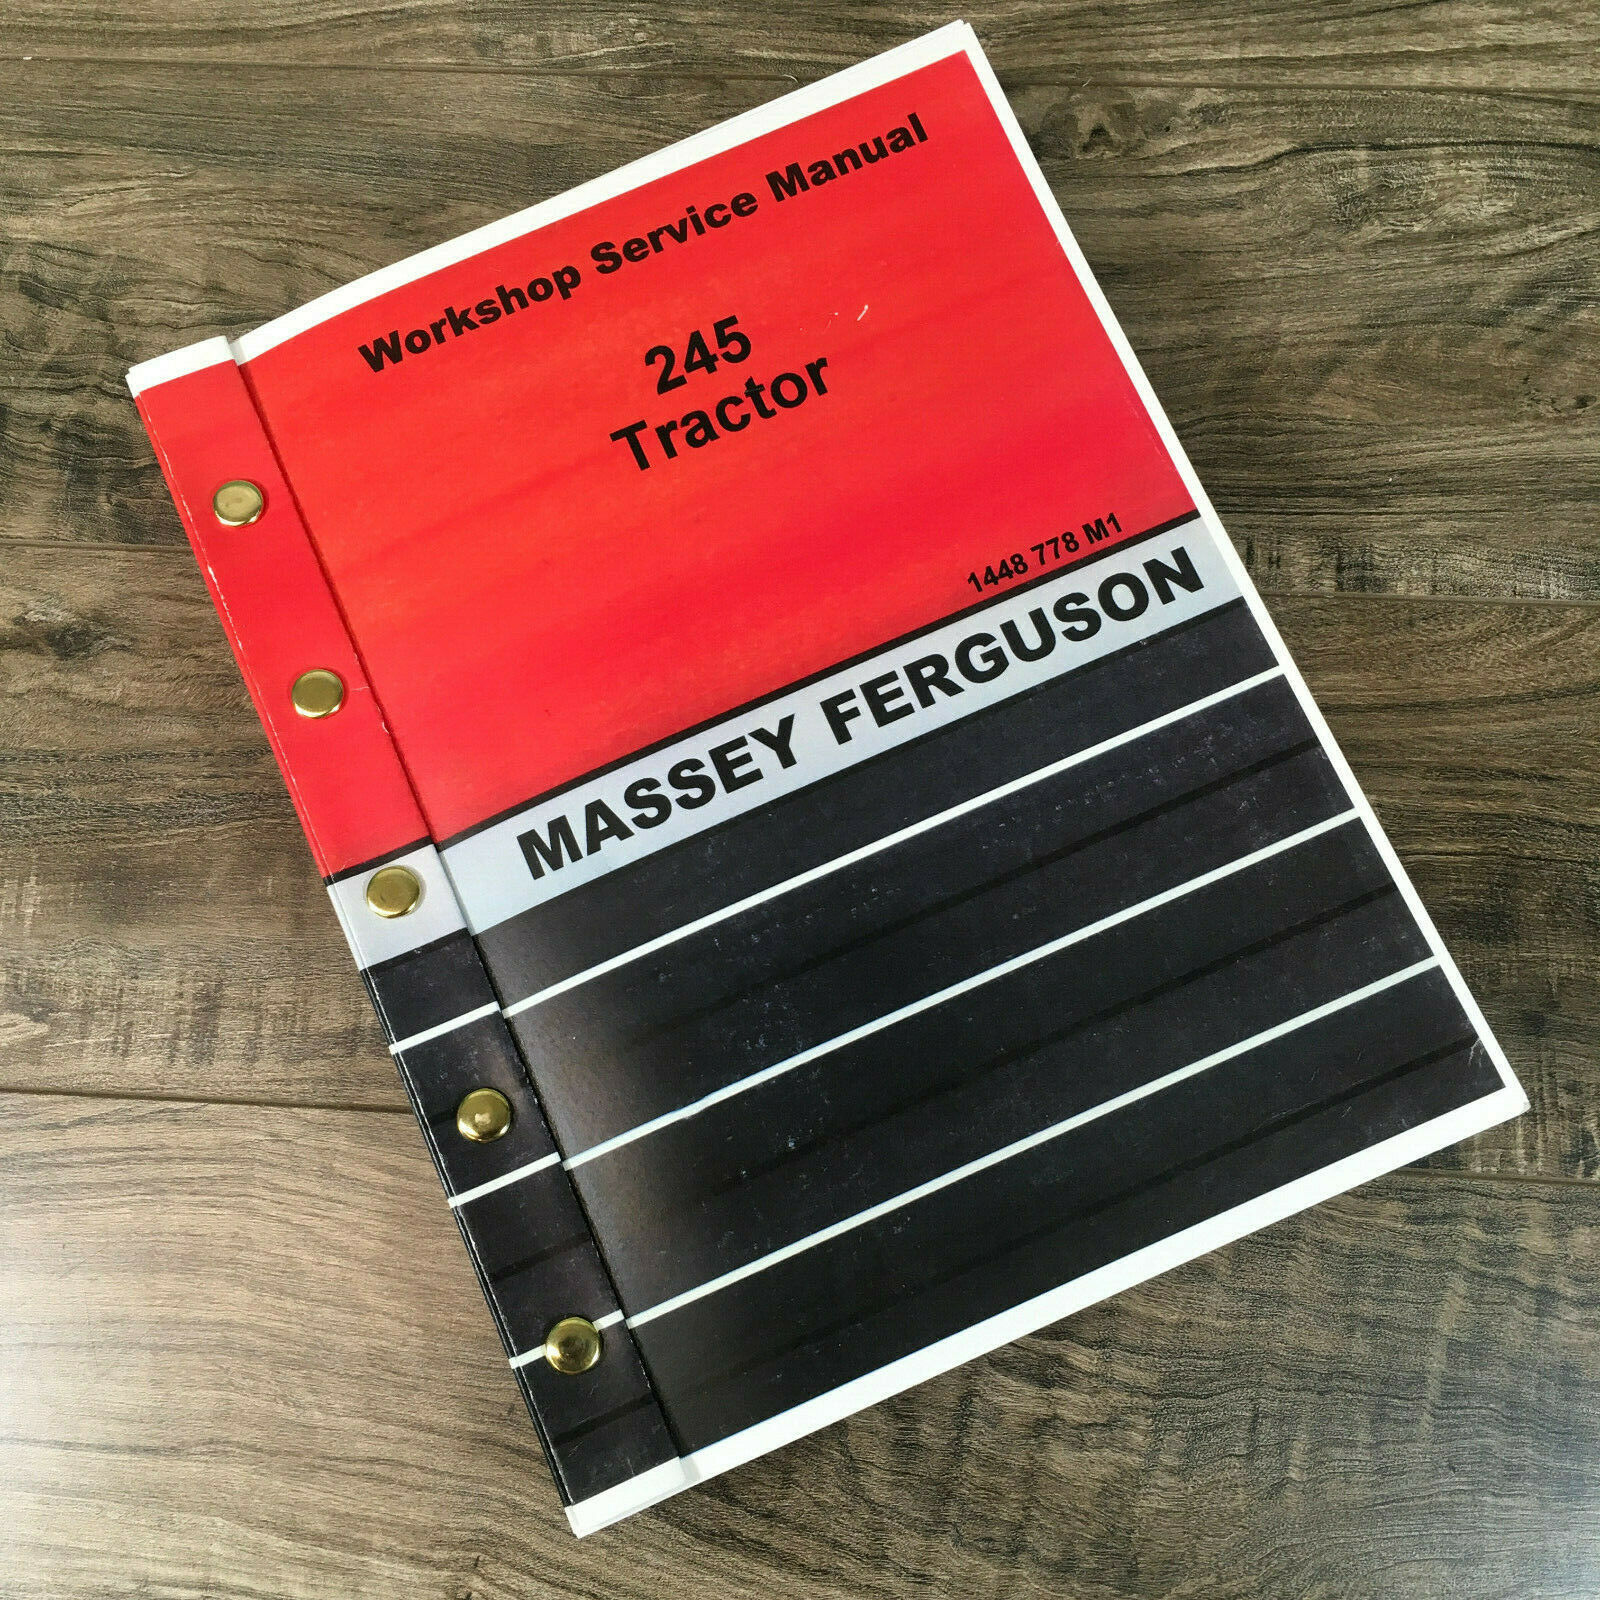 Massey Ferguson Mf 245 Tractor Service Repair Manual Technical Shop Book 1  of 8Only 2 available ...